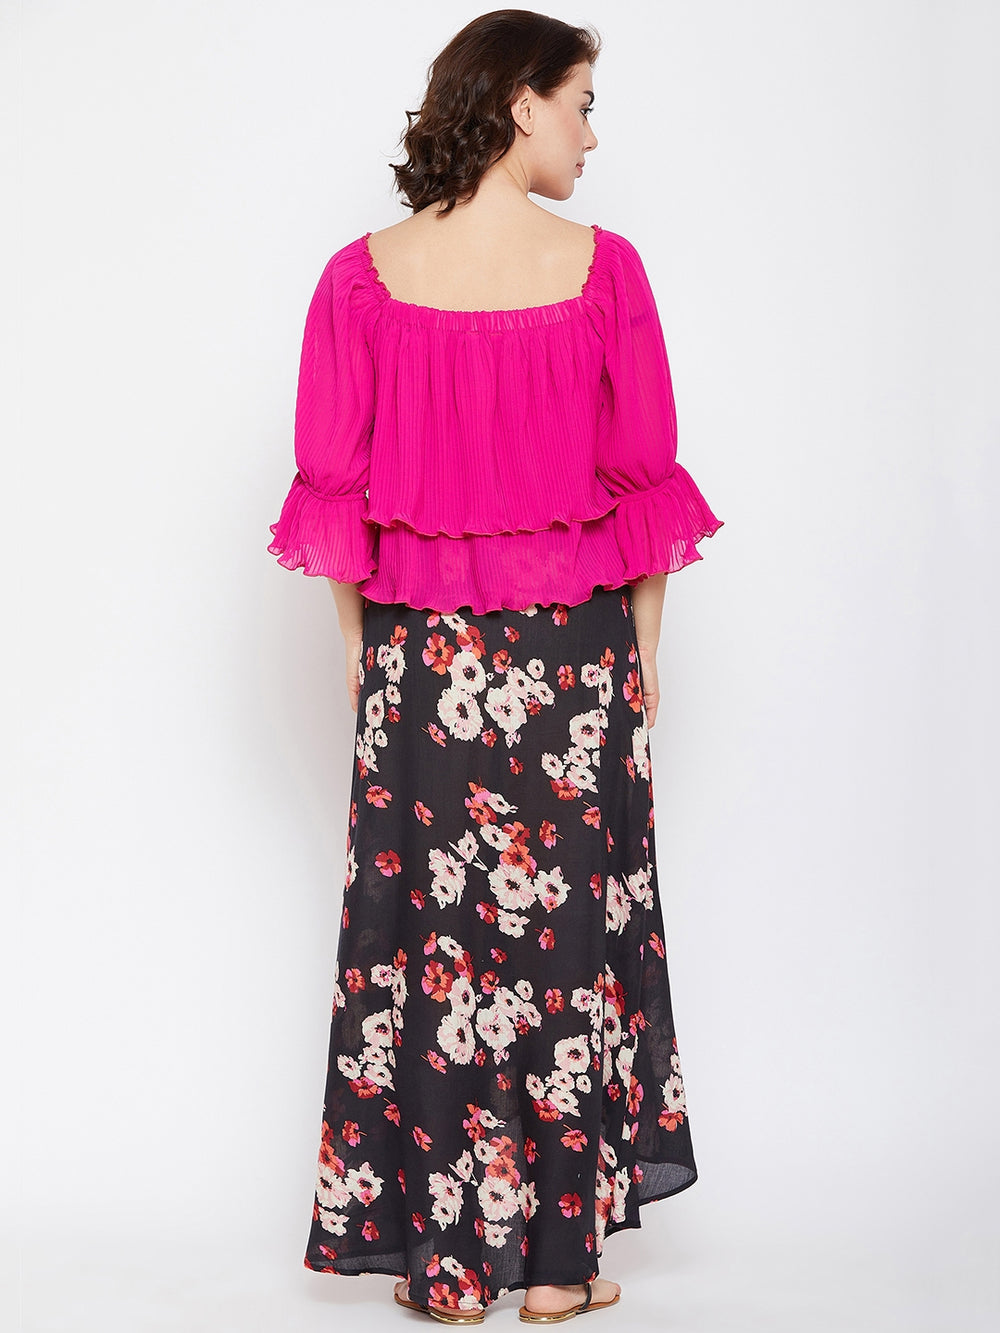 BARDOT PLEATED TOP AND MAXI SKIRT SET